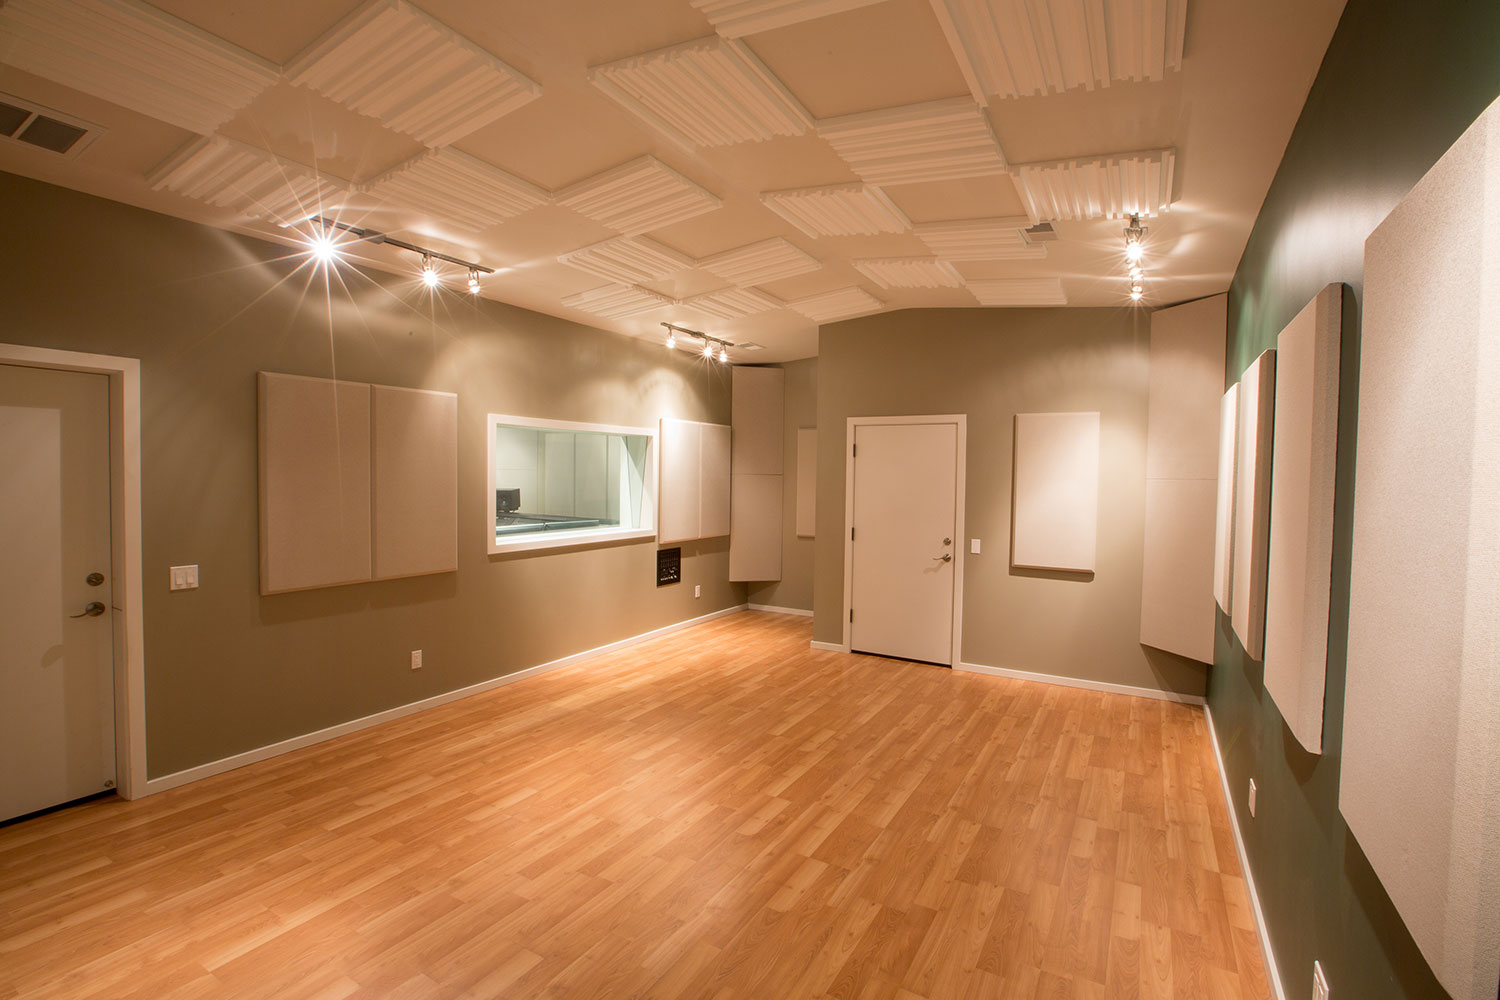 SGM Studio live room view of recording facilities in San Diego